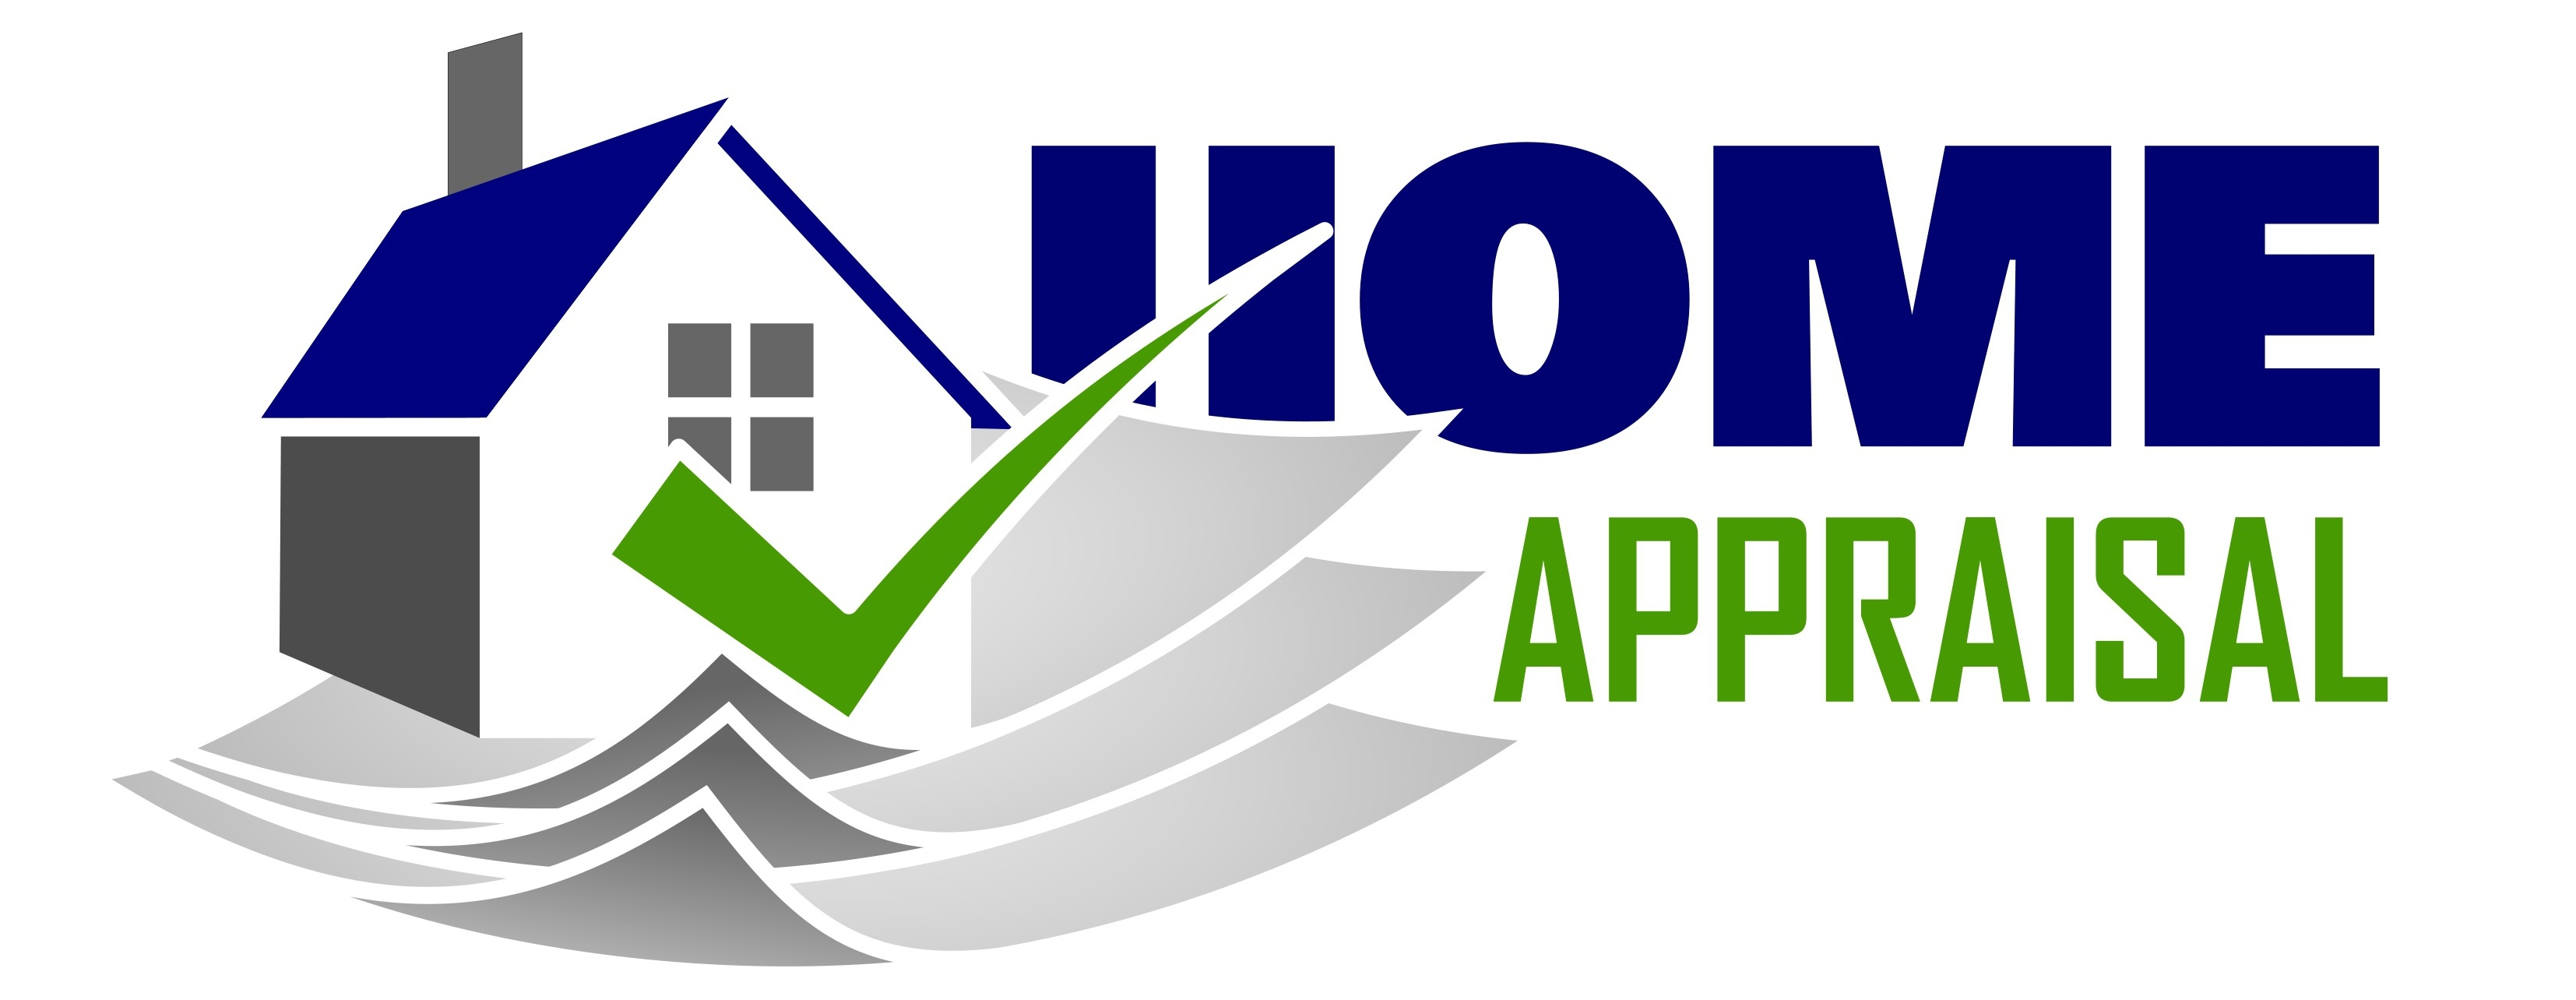 What is the Purpose of a Property Appraisal?